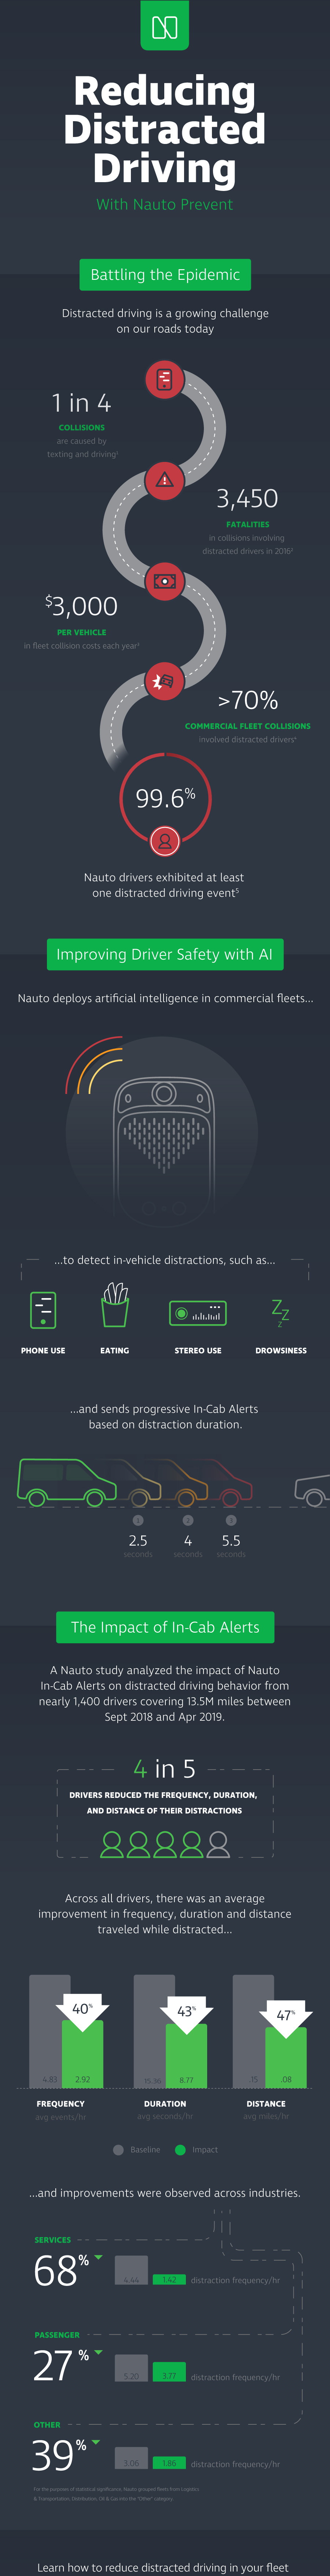 Infographic showing how Nauto reduces distracted driving incidents with Nauto Prevent